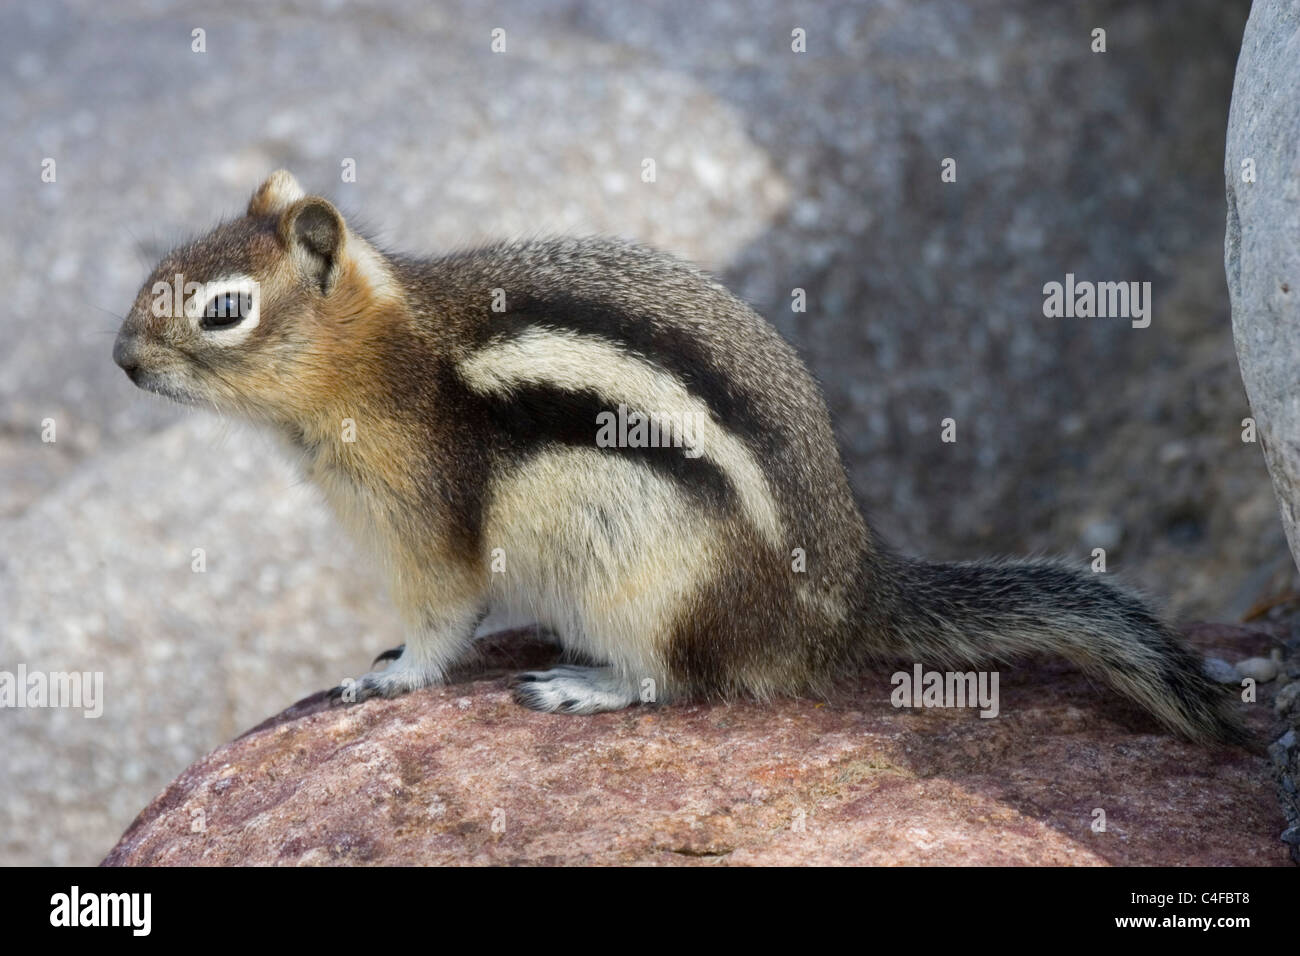 Golden-Mantled Ground squirrel.(Spermophius lateralis).Jasper National Park, Canada.. - Stock Image